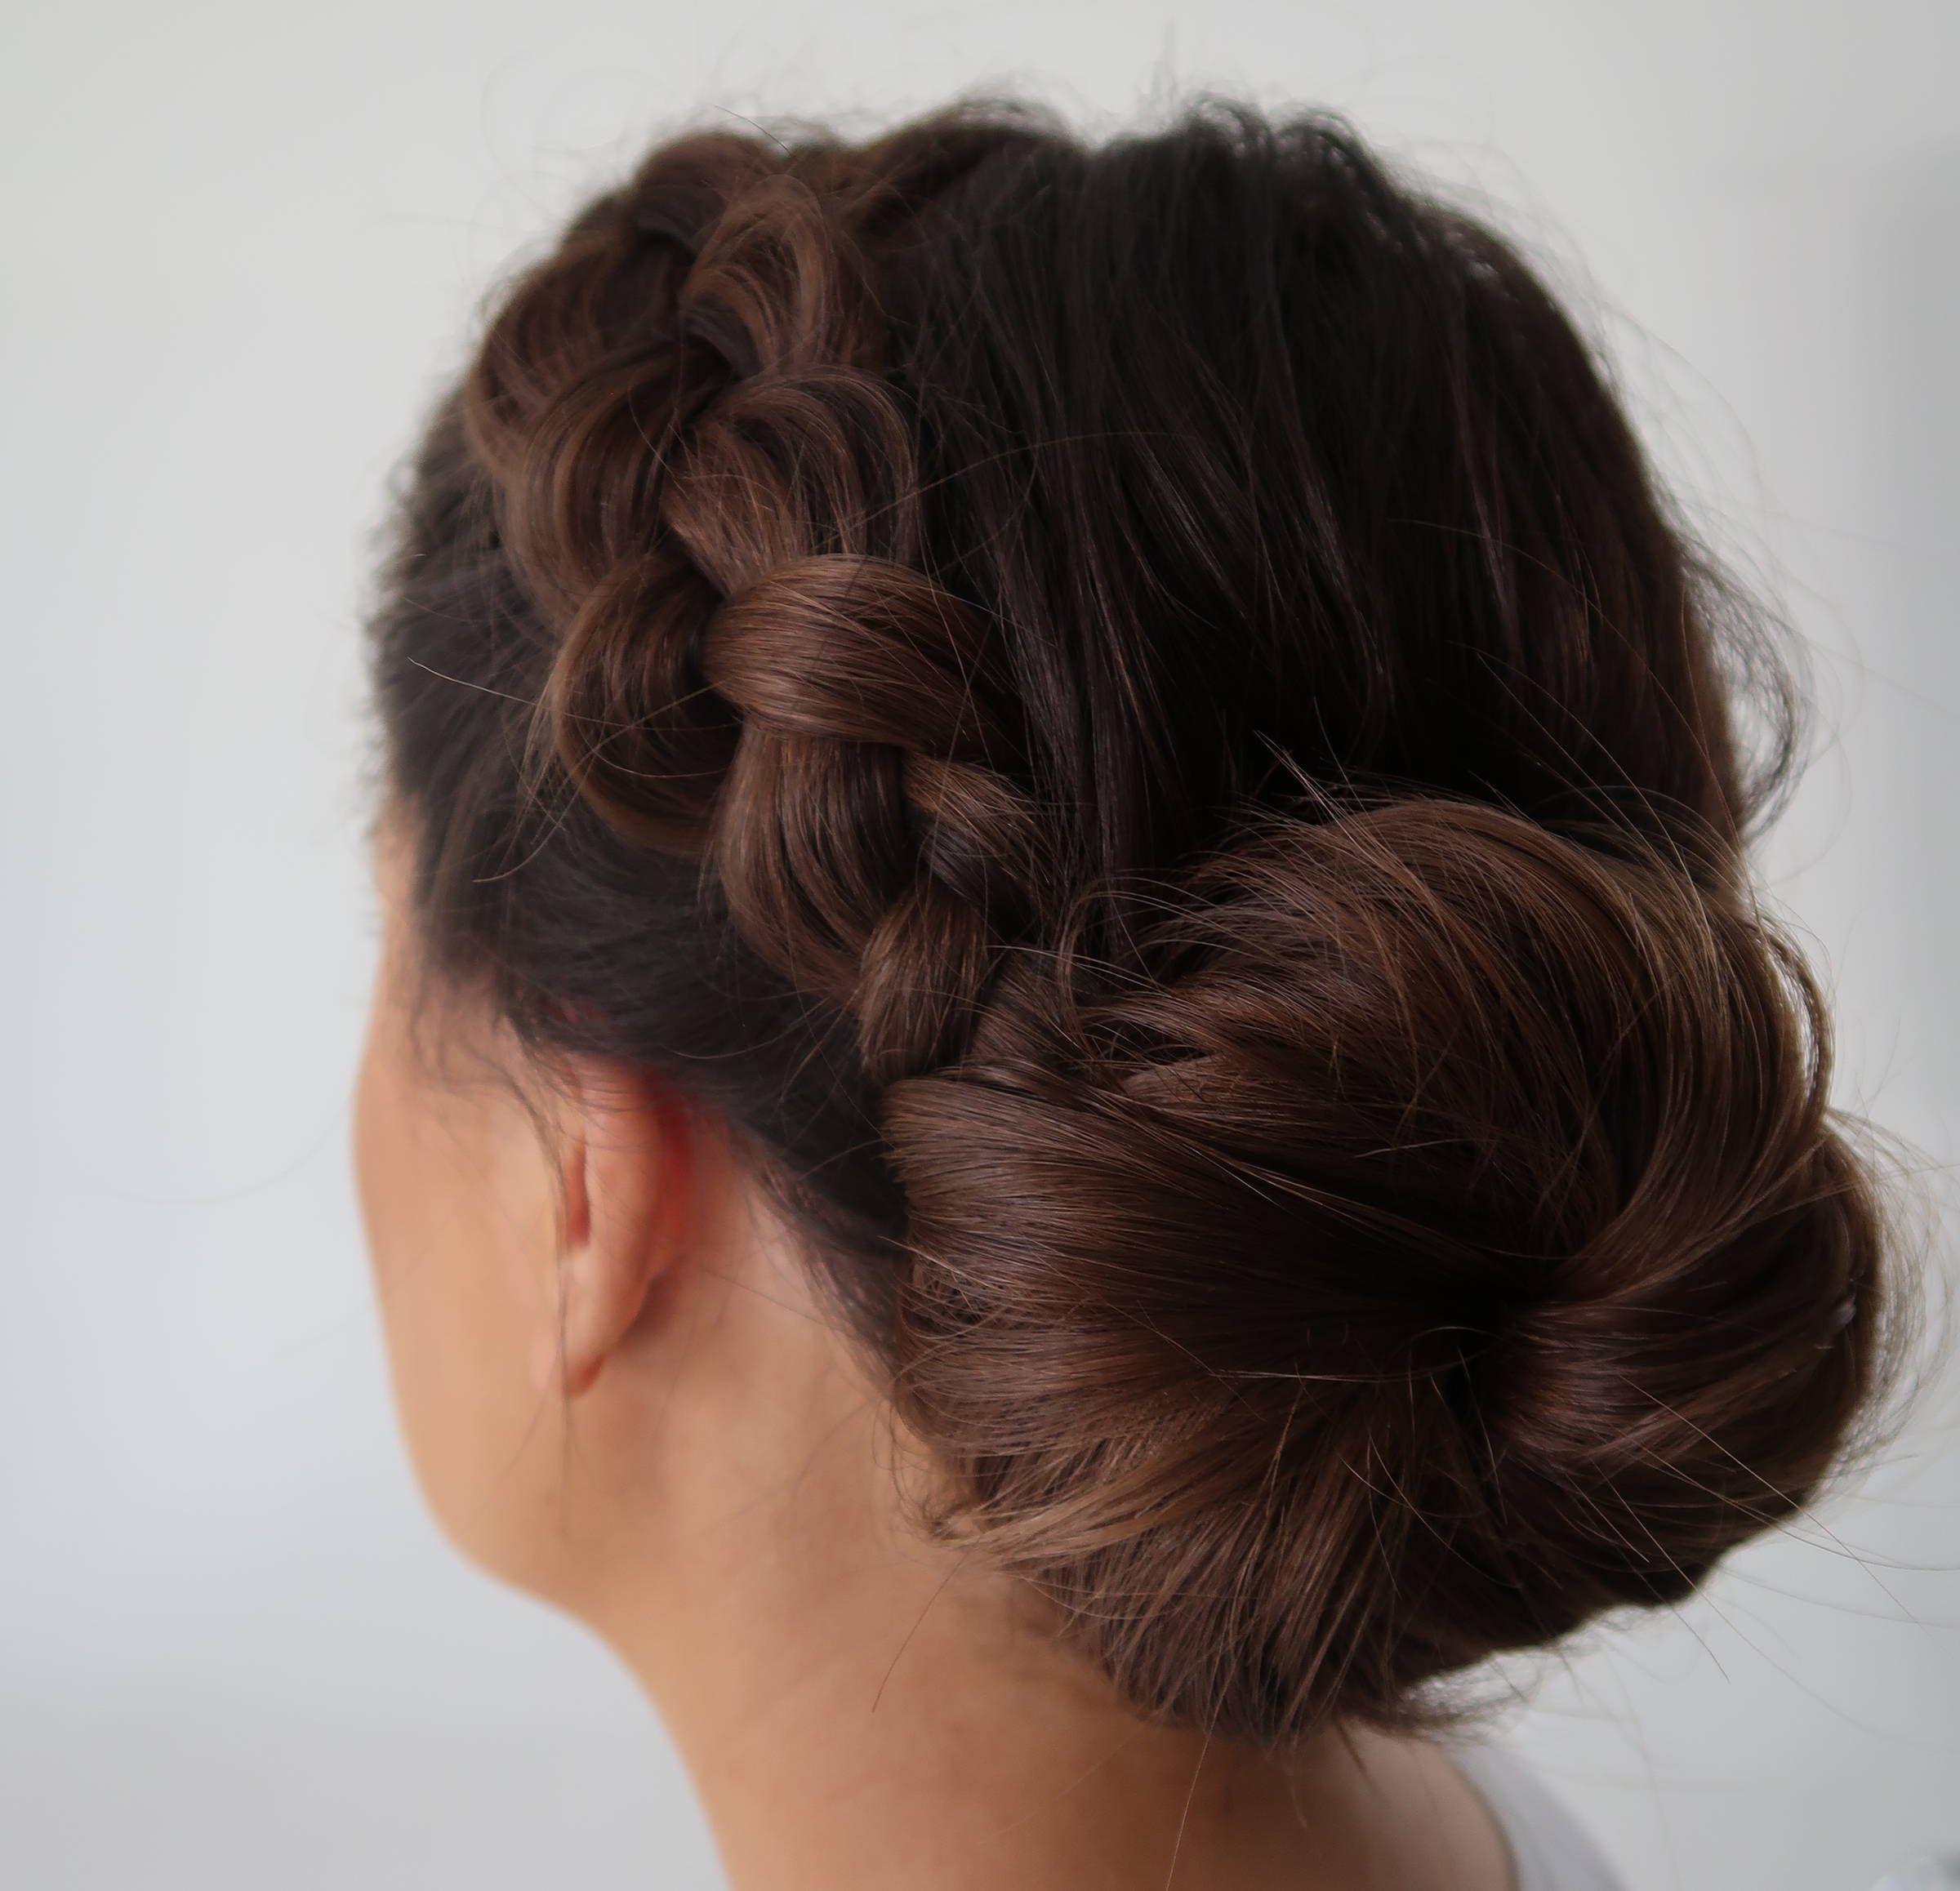 Davines crown braid how to tutorial